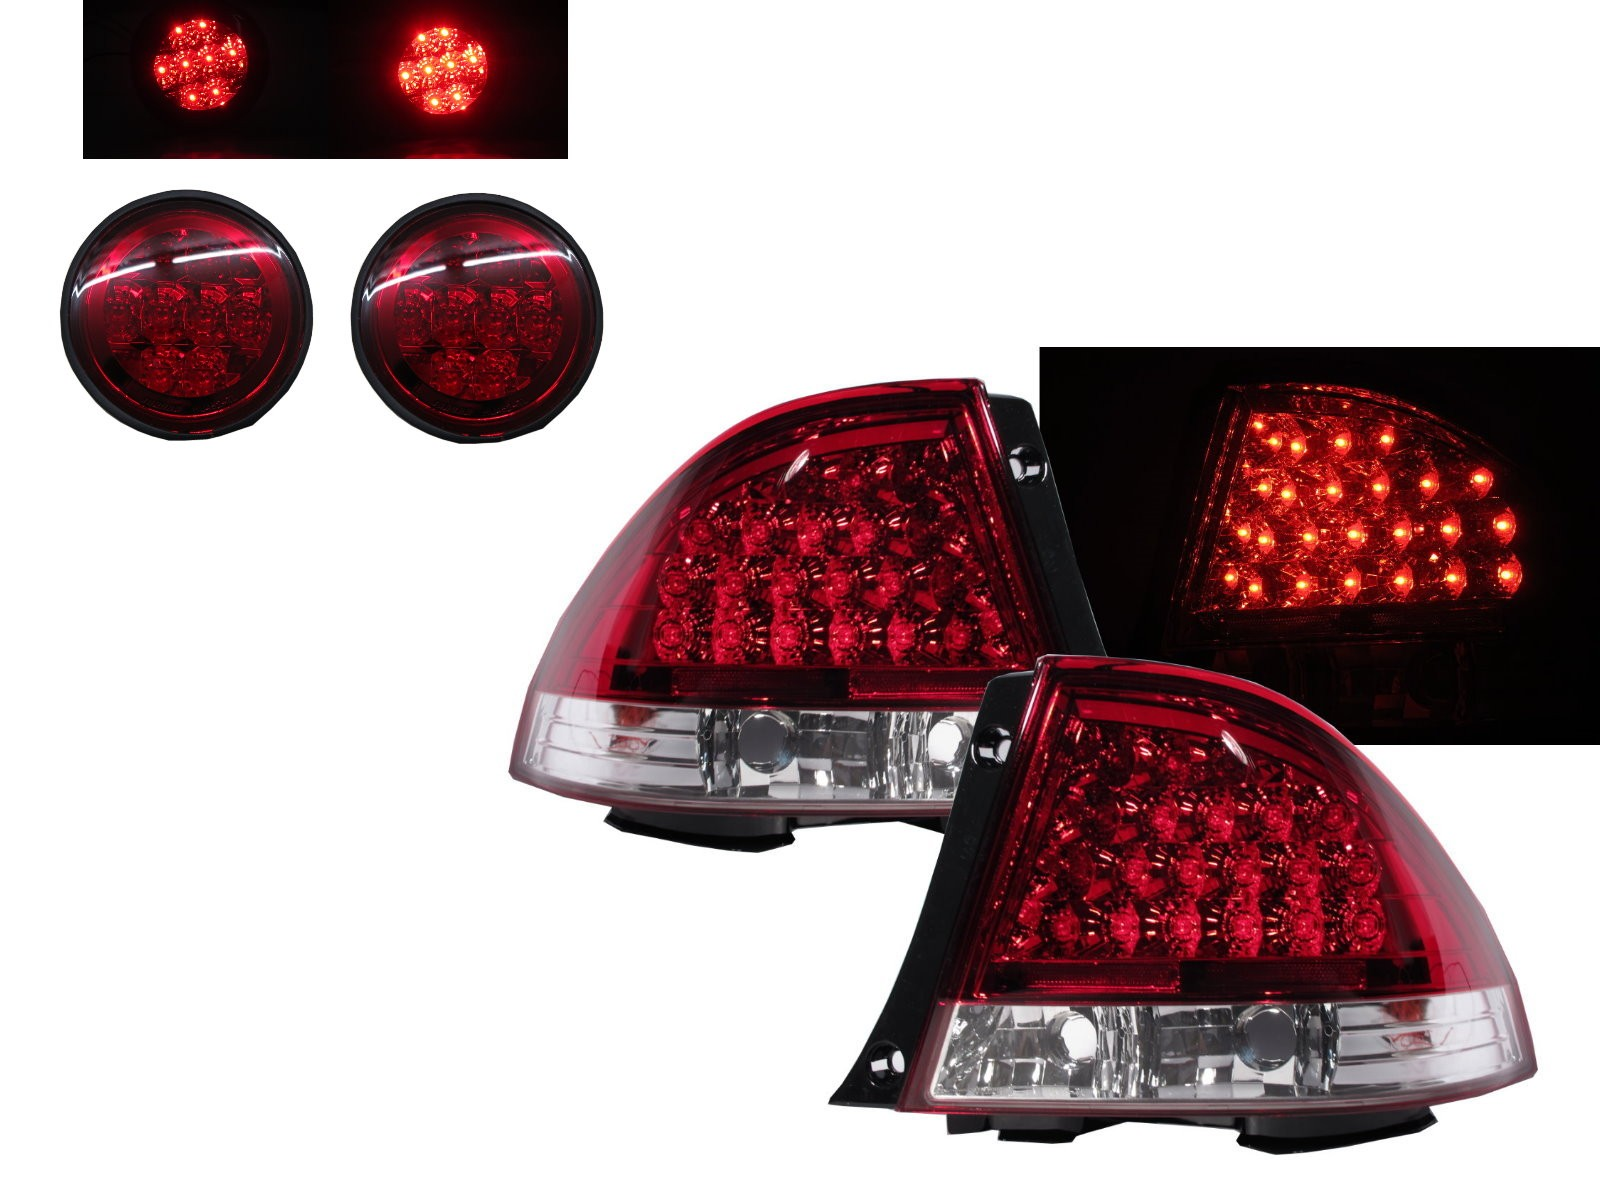 CrazyTheGod IS IS200/IS300 XE10 1999-2005 Sedan/Hatchback/Wagon 4D/5D LED Tail Rear Light Red/White for LEXUS